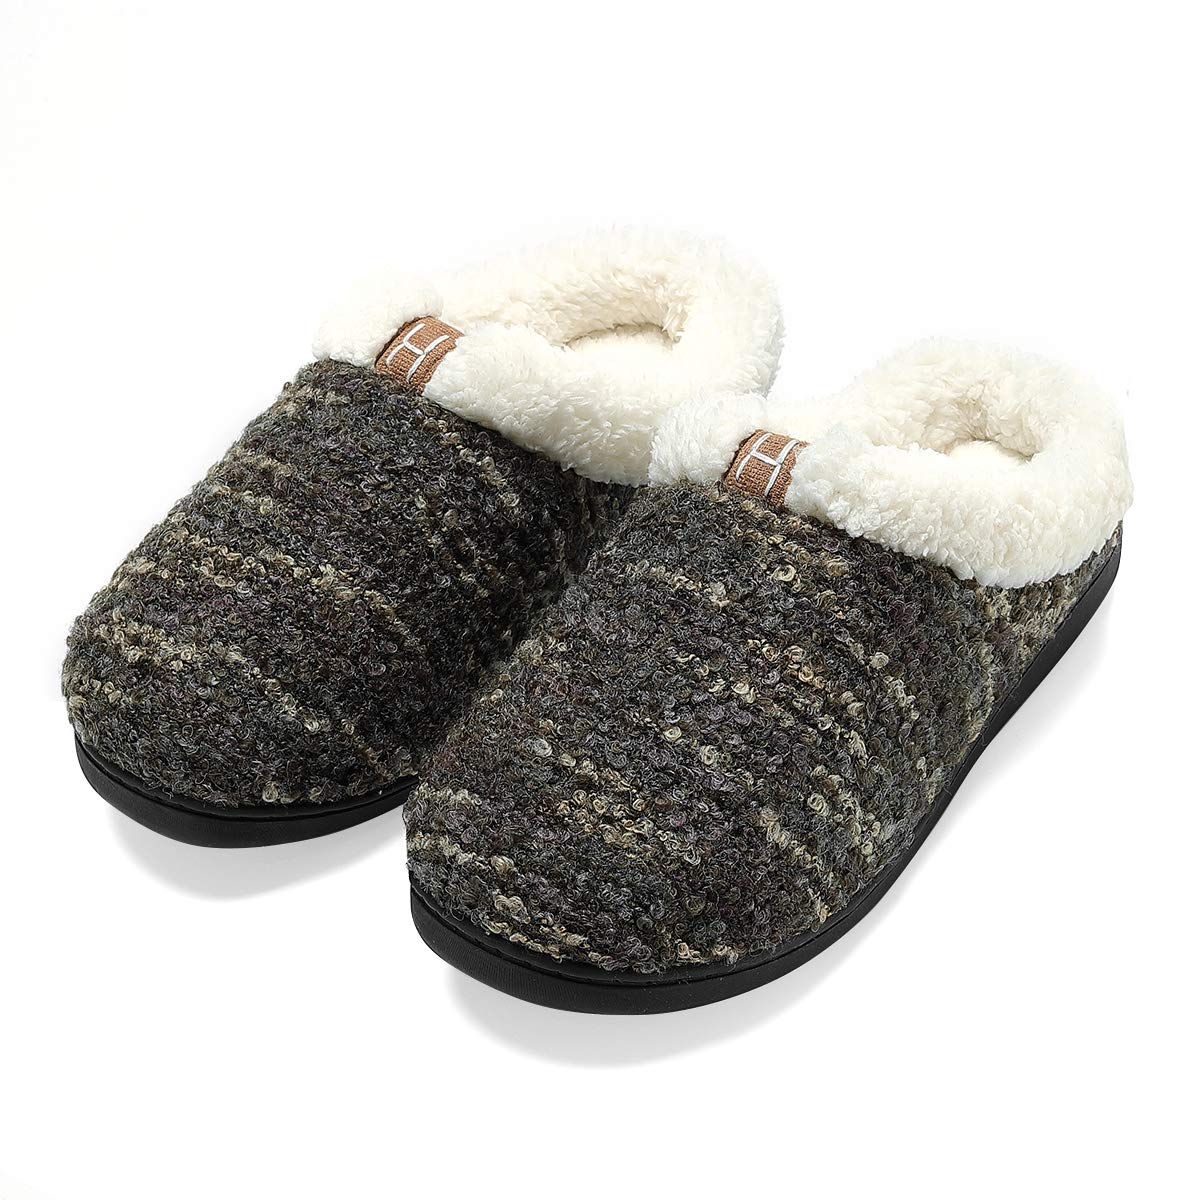 Men's Memory Foam House Slippers Wool-Like Plush Fleece Indoor/Outdoor Shoes CAMJL07033 men